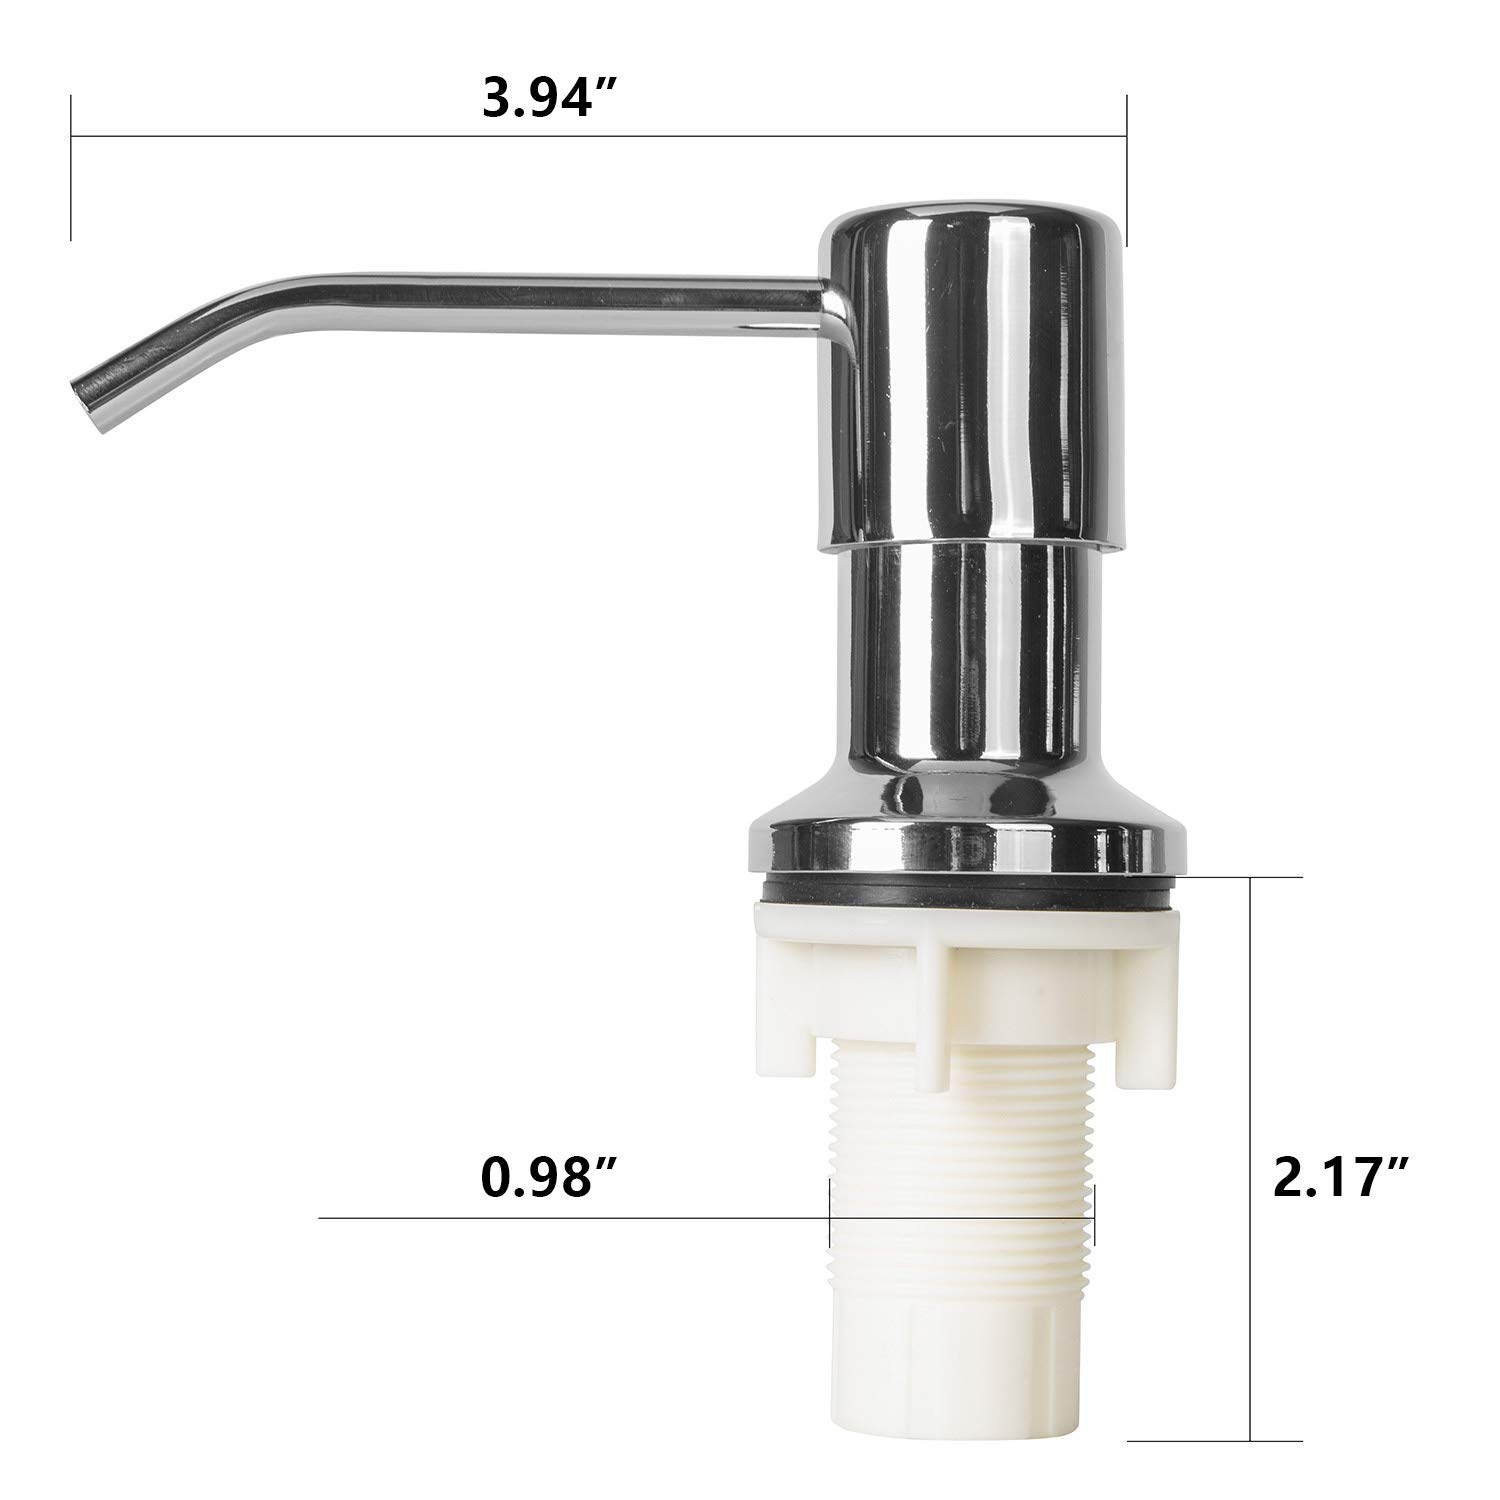 Soap Dispenser for Kitchen Sink and Tube Kit,47'' Tube,Chrome Finish Soap Dispenser Pump,No More Messy Refills by WeyTy (Image #5)